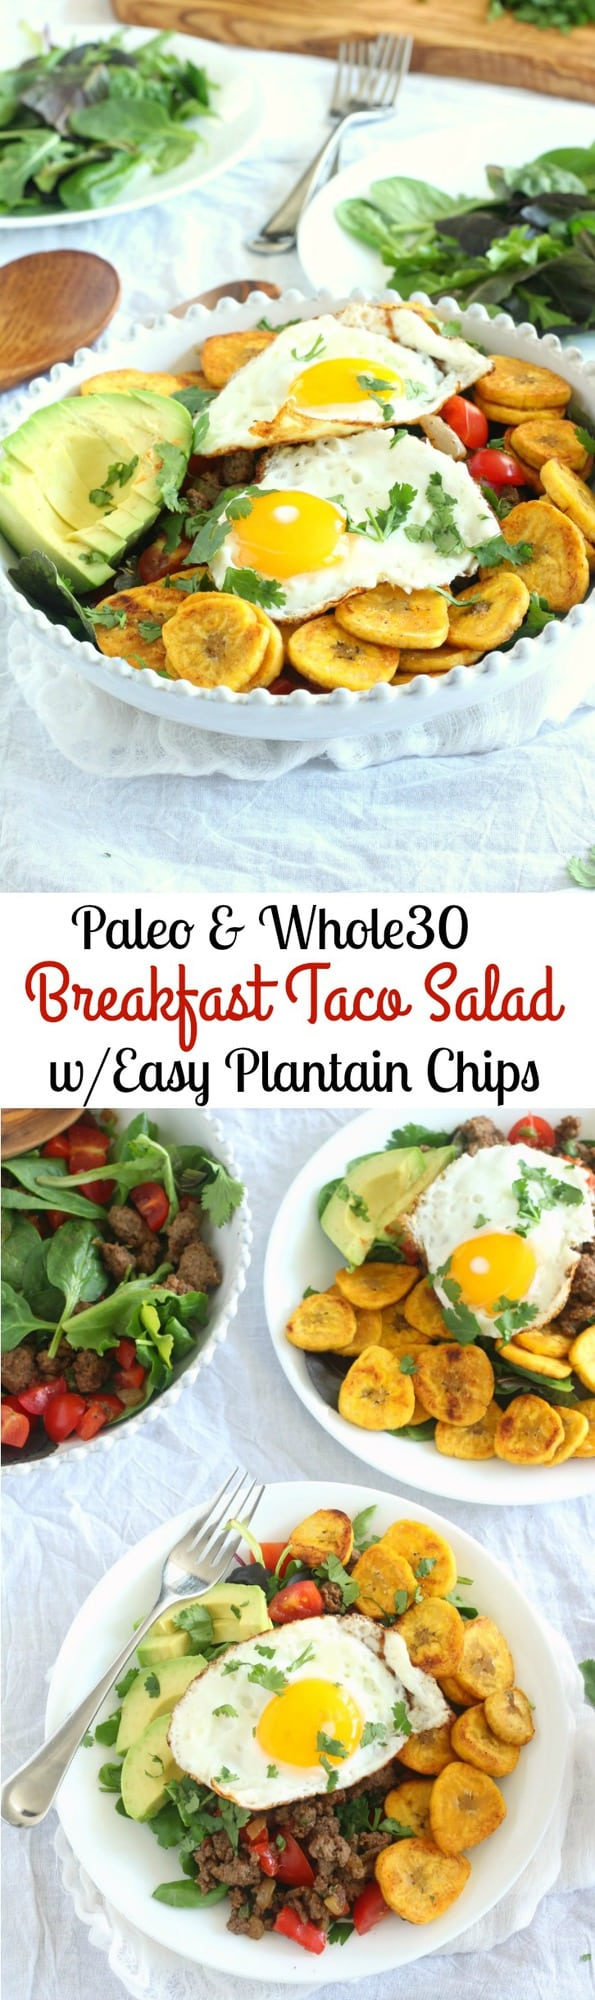 Breakfast Taco Salad - Paleo and Whole30 friendly - with easy homemade plantain chips, spicy beef, avocado and cilantro